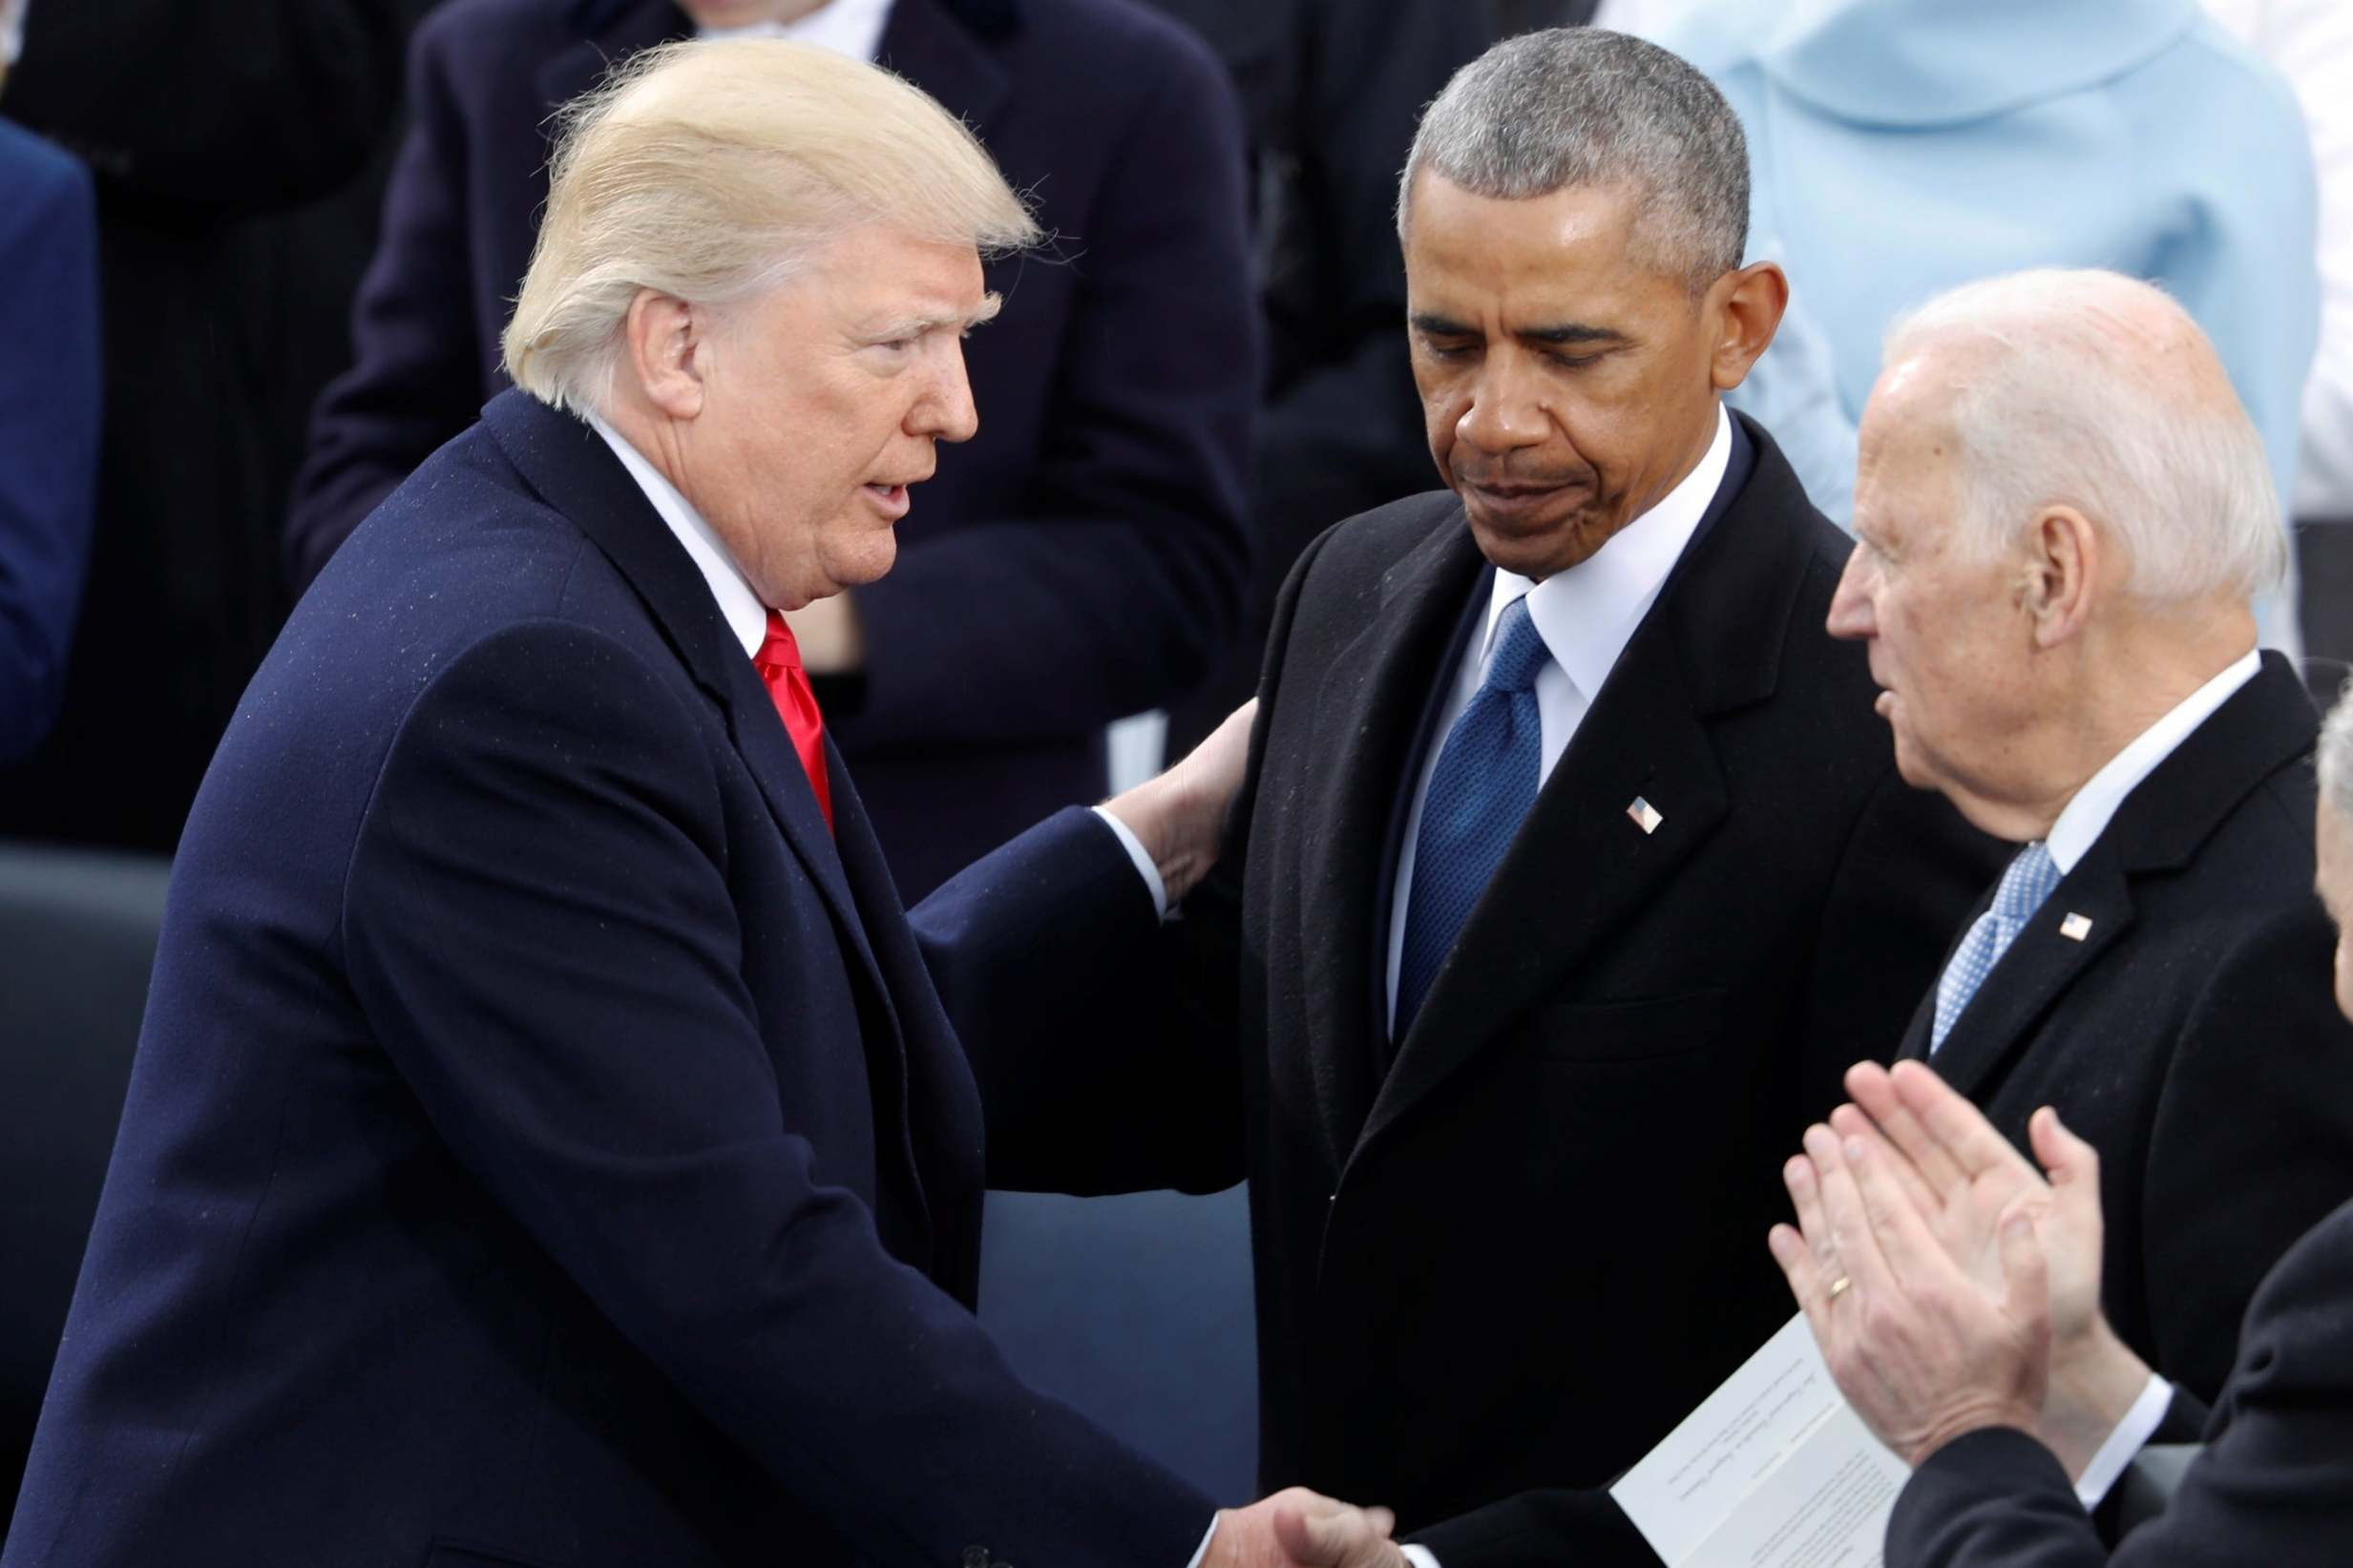 This is high treason: Trump aims at Obama